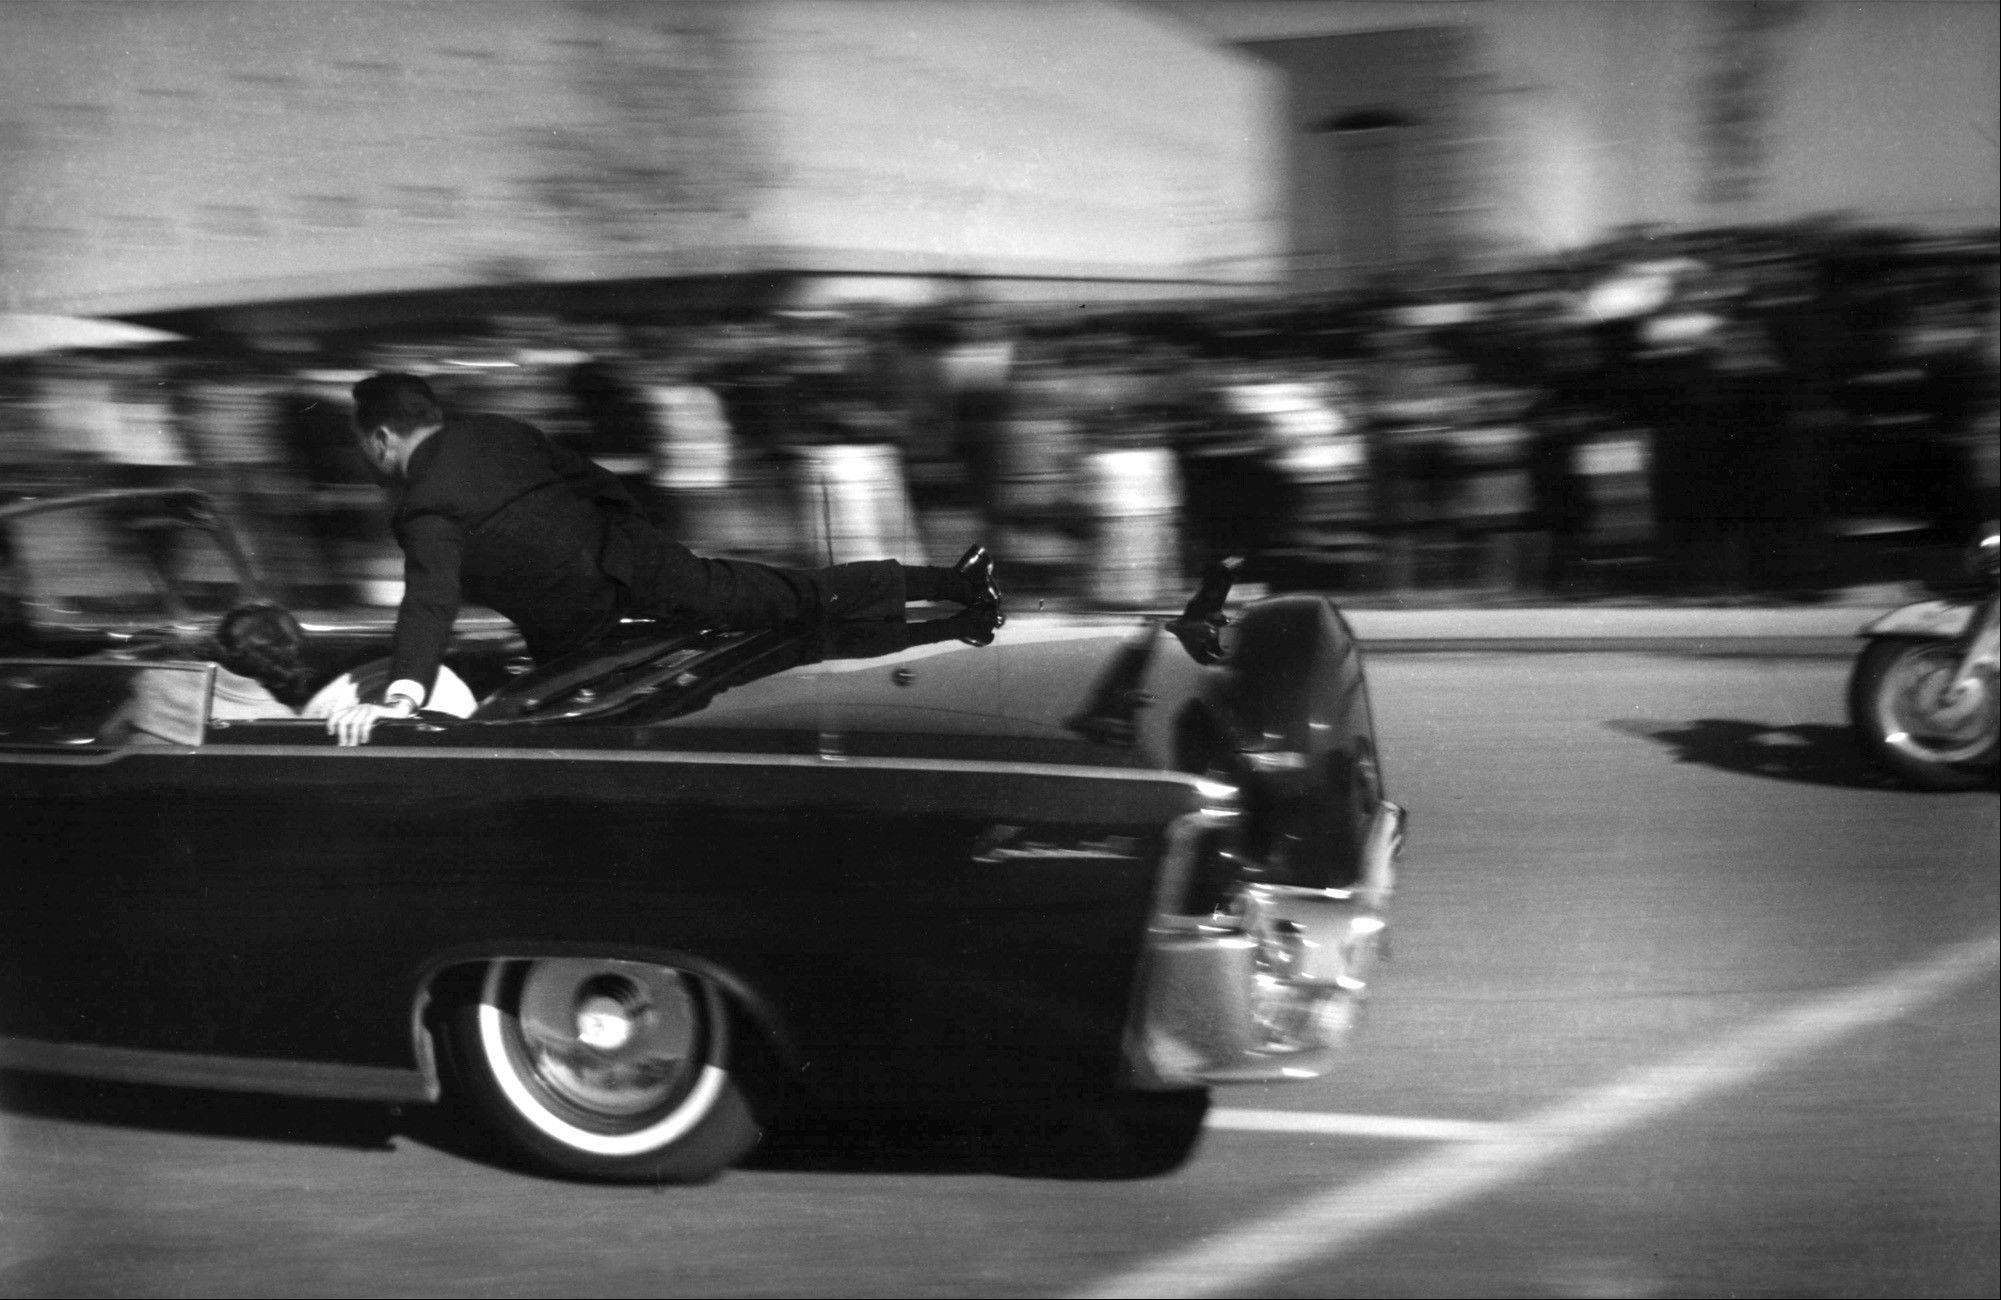 The limousine carrying mortally wounded President John F. Kennedy races toward the hospital seconds after he was shot in Dallas.